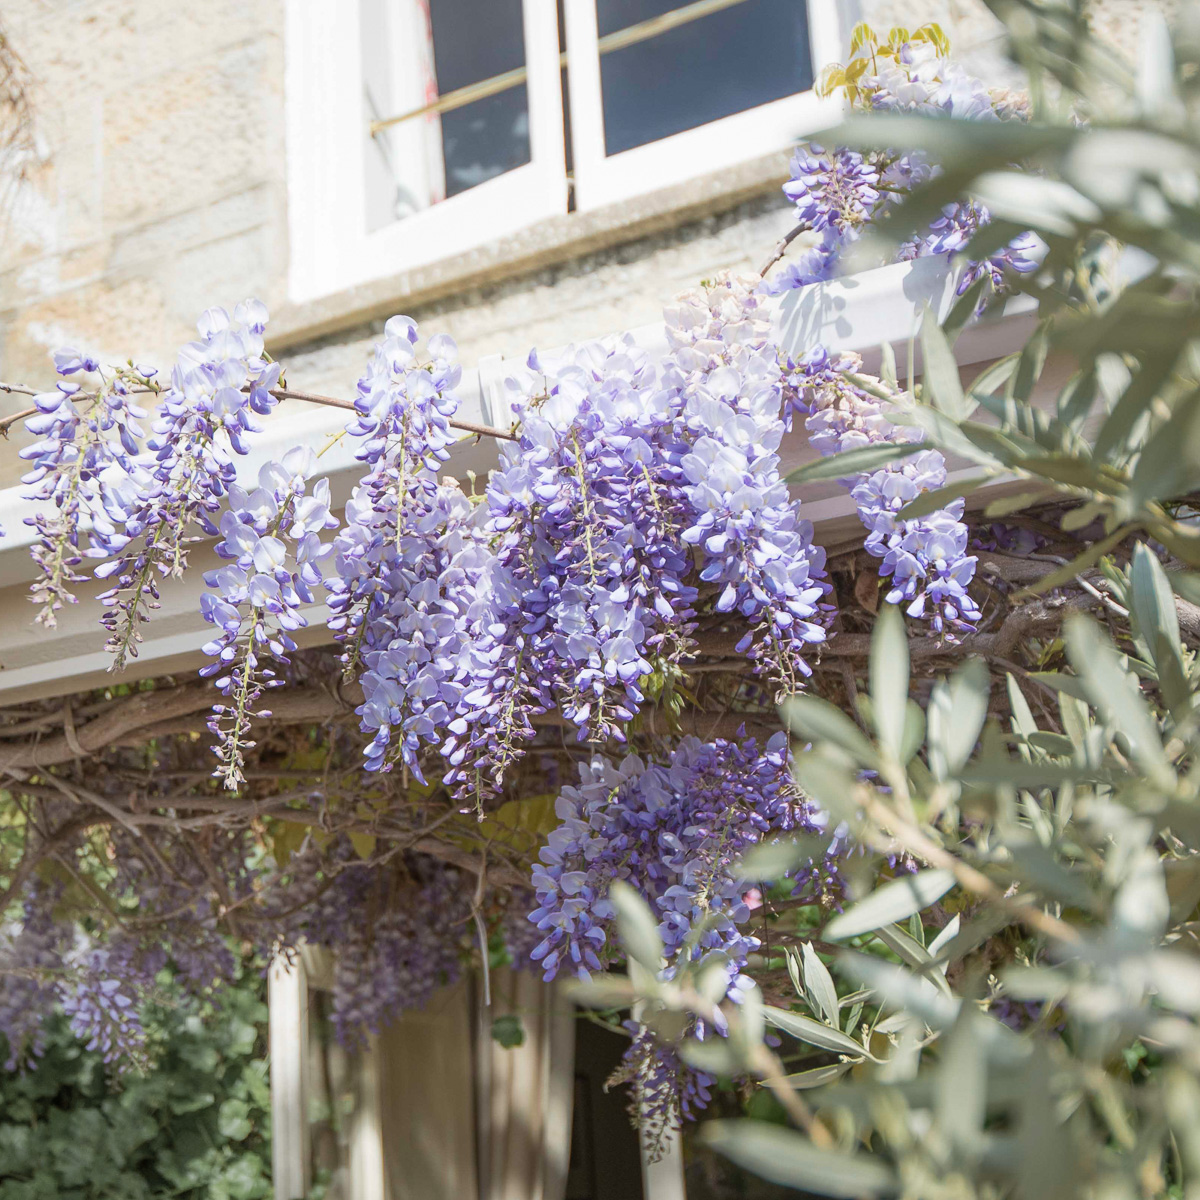 The Royal Hotel, wisteria